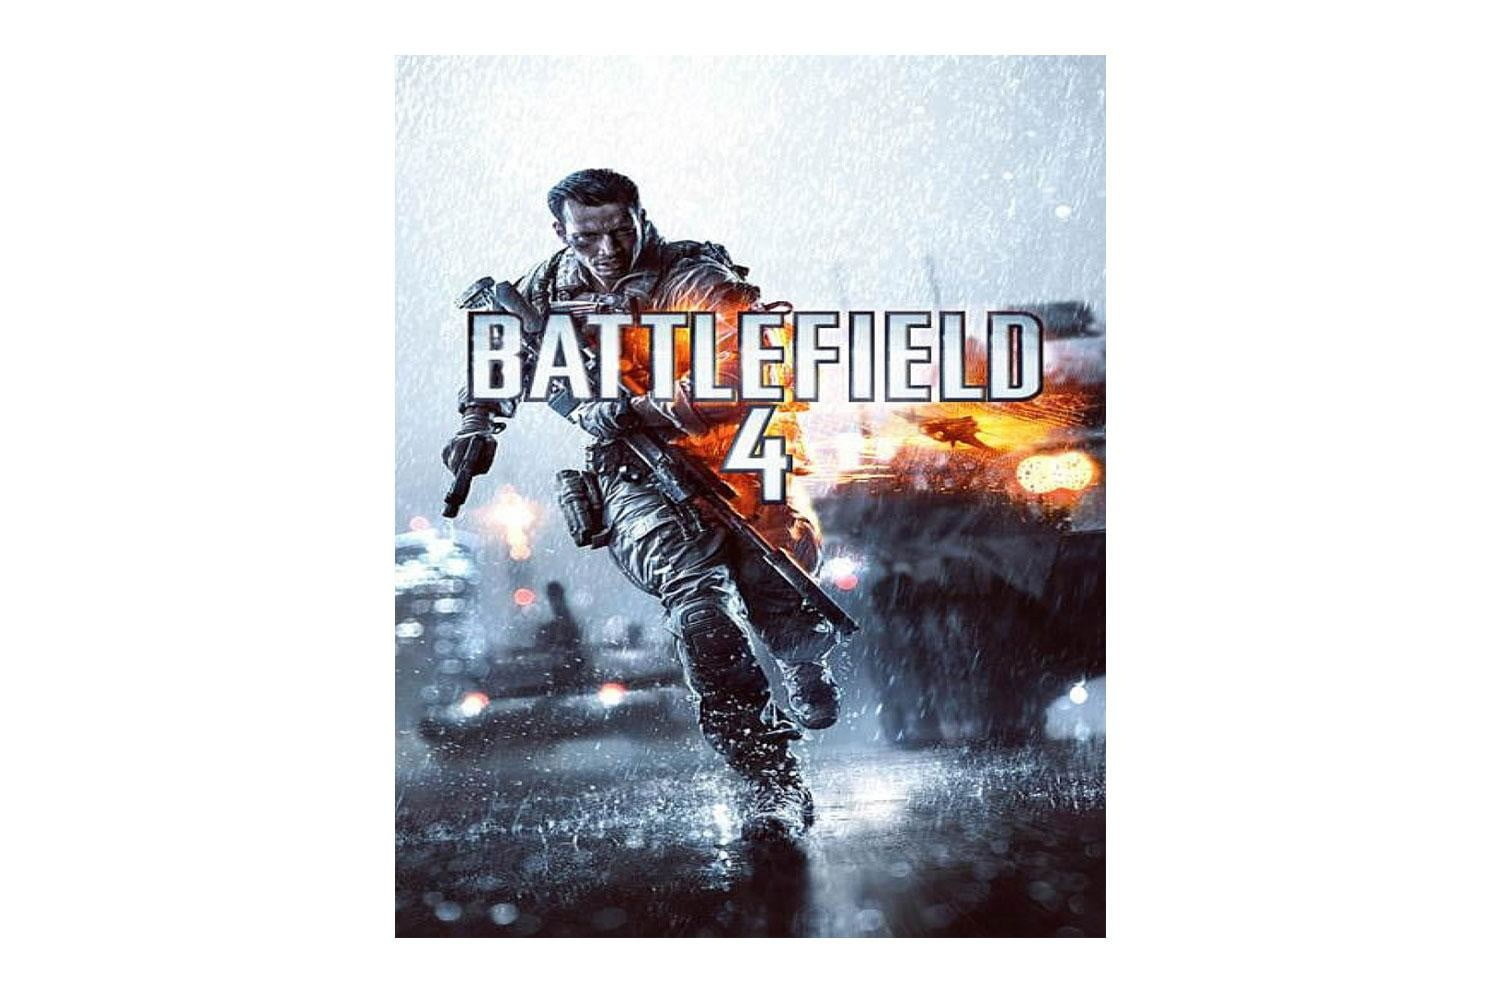 Battlefield-4-cover-art